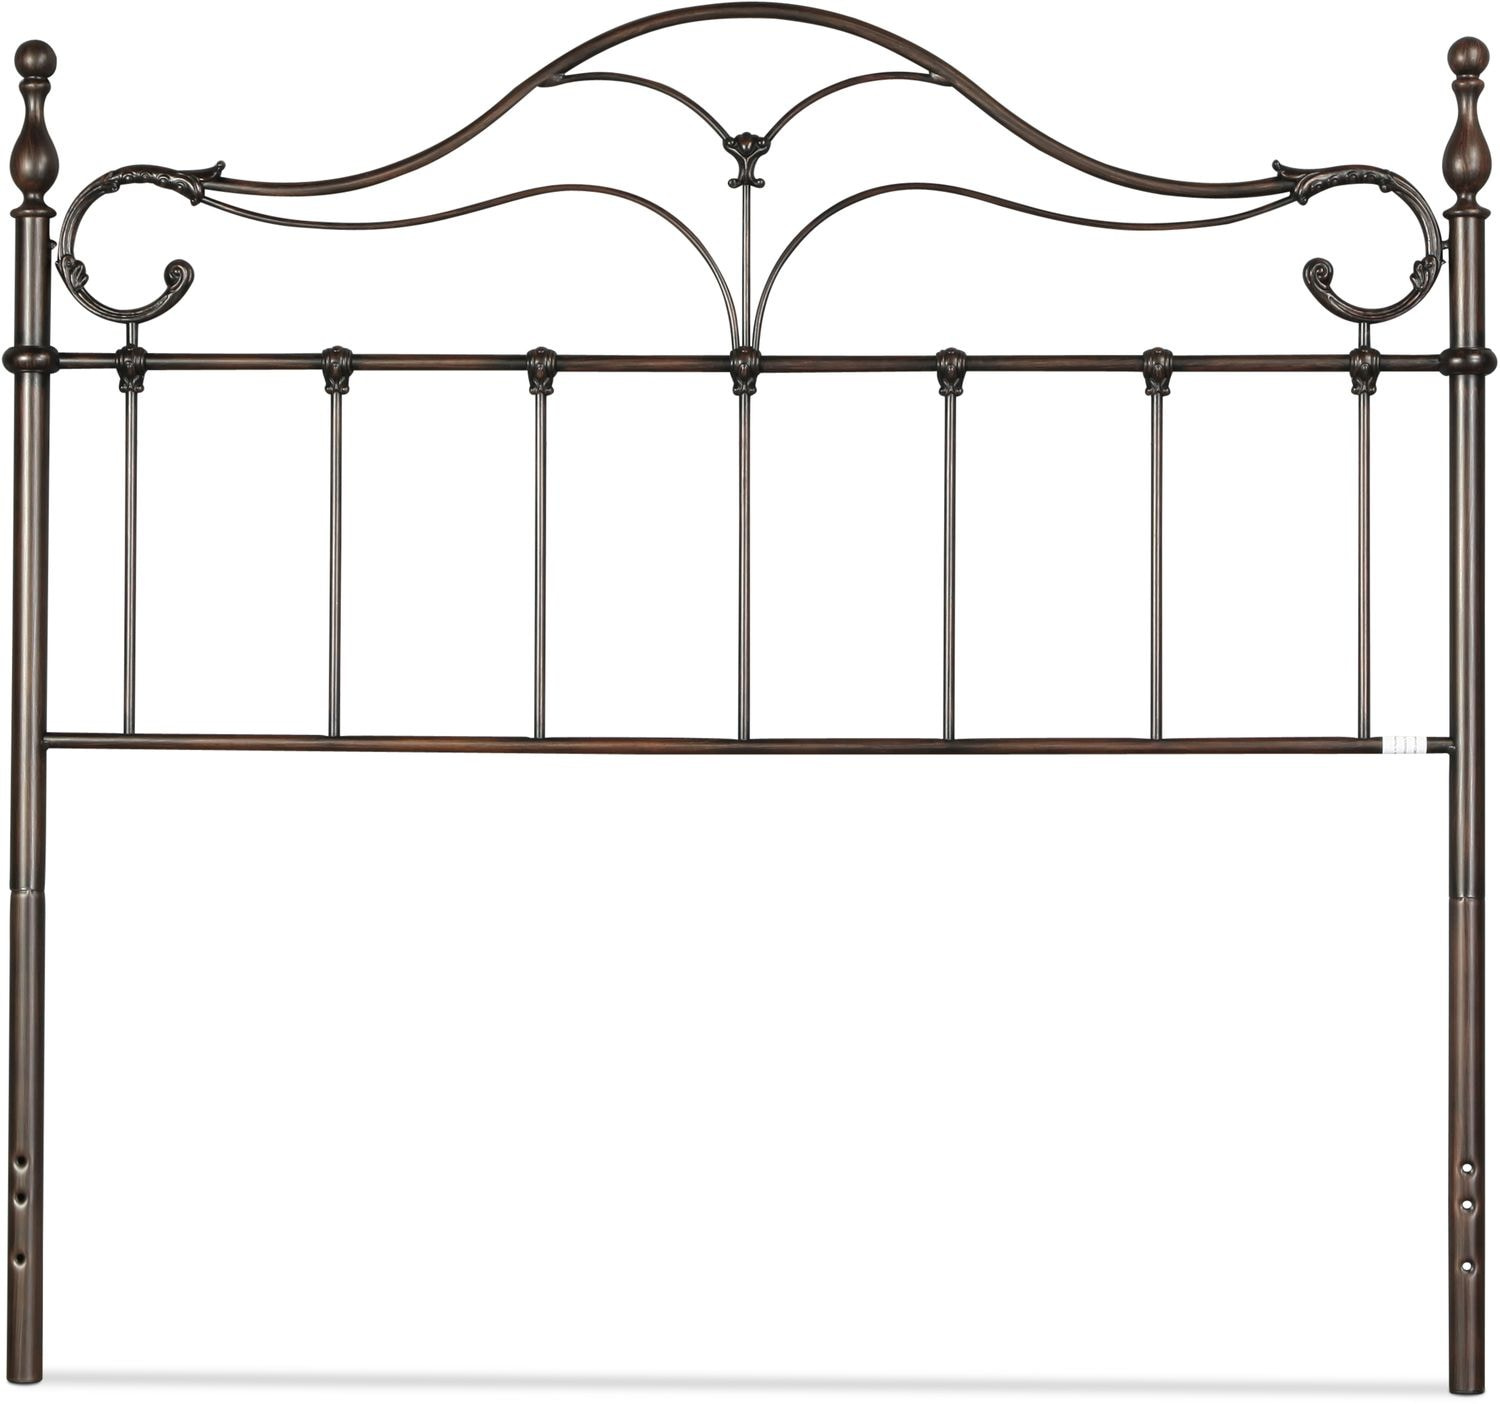 Bennett Full/Queen Headboard - Antique Bronze